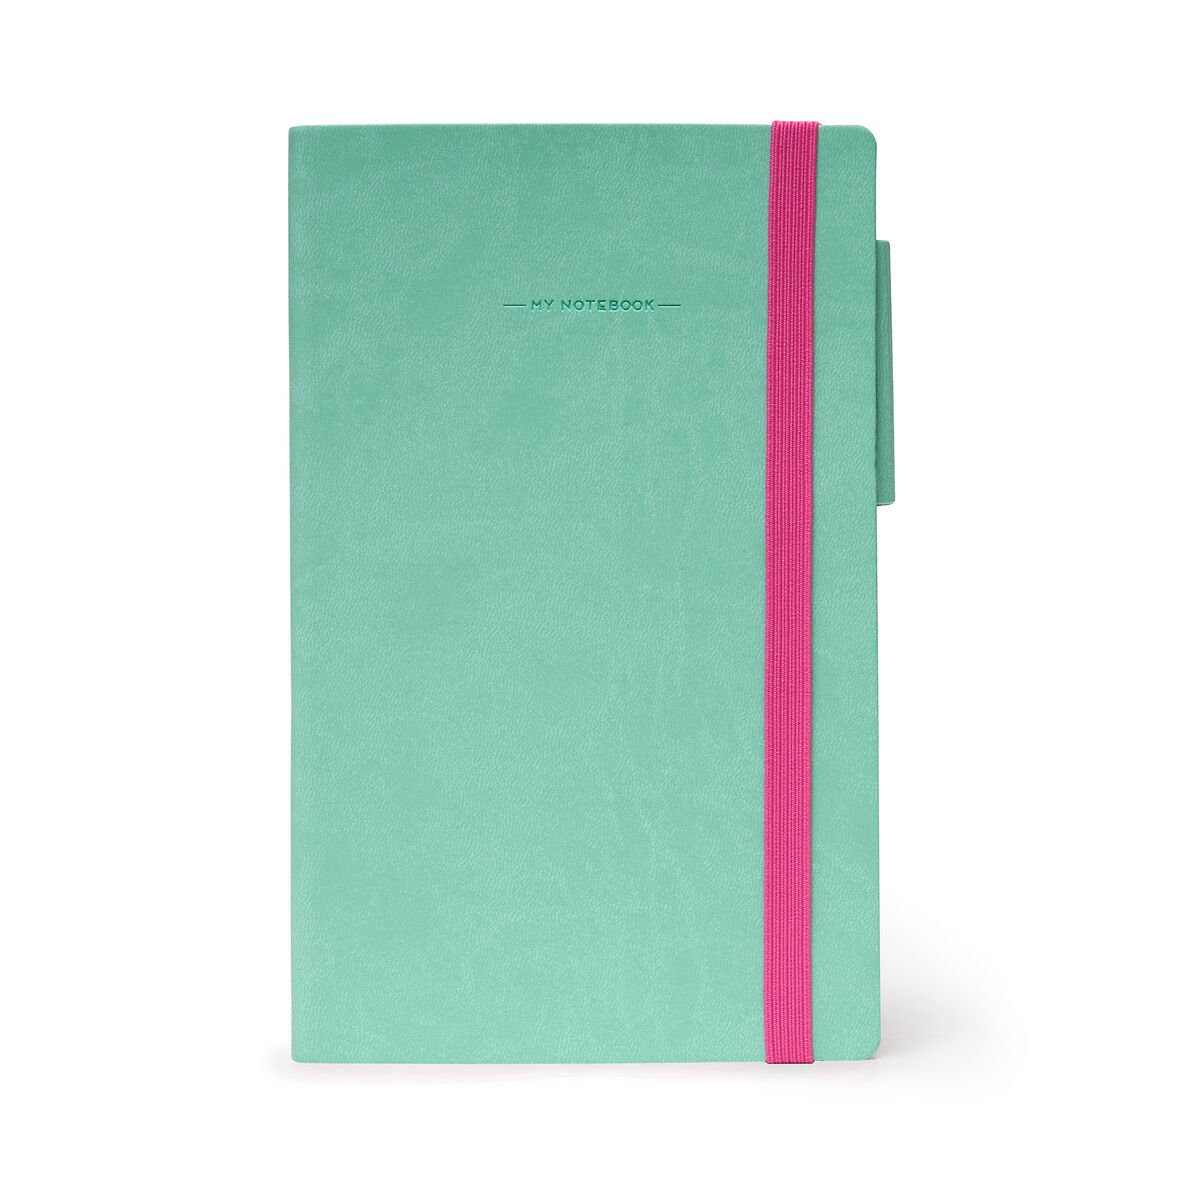 My Notebook - Dotted, , zoom